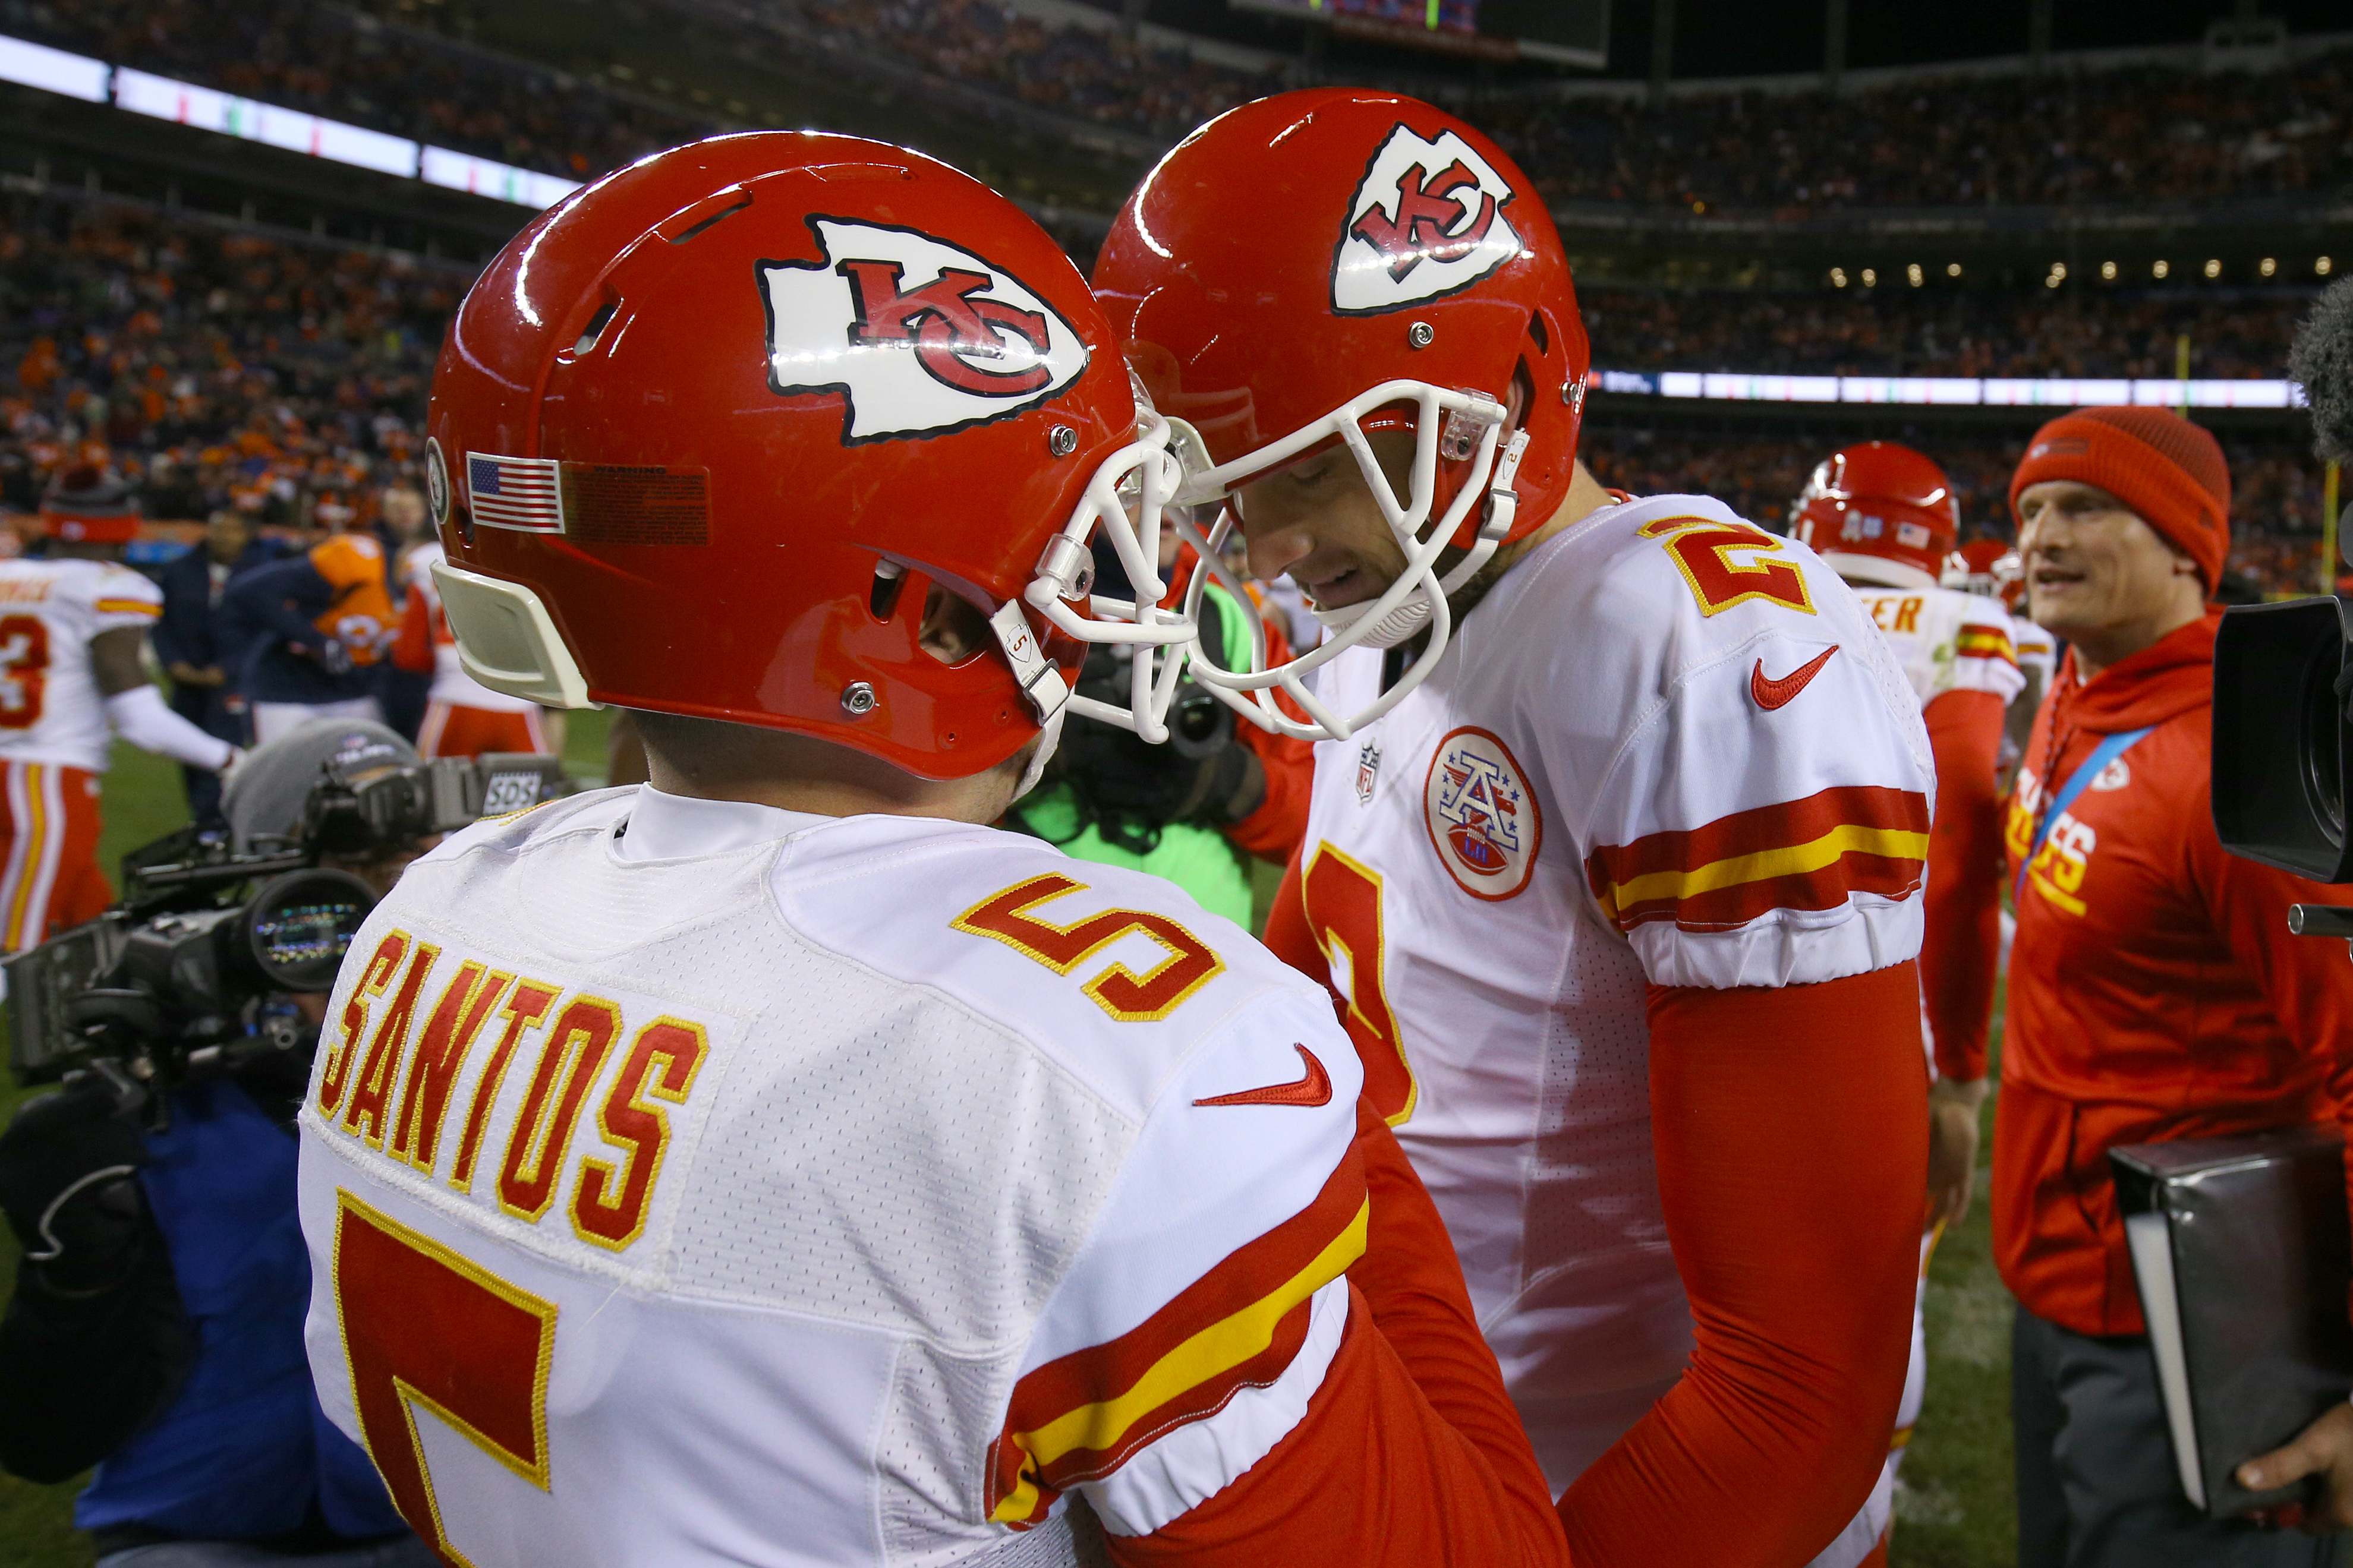 DENVER, CO - NOVEMBER 27: Dustin Colquitt #2 of the Kansas City Chiefs celebrates with kicker Cairo Santos #5 after he made a game-winning field goal in overtime against the Denver Broncos at Sports Authority Field at Mile High on November 27, 2016 in Denver, Colorado. (Photo by Justin Edmonds/Getty Images)